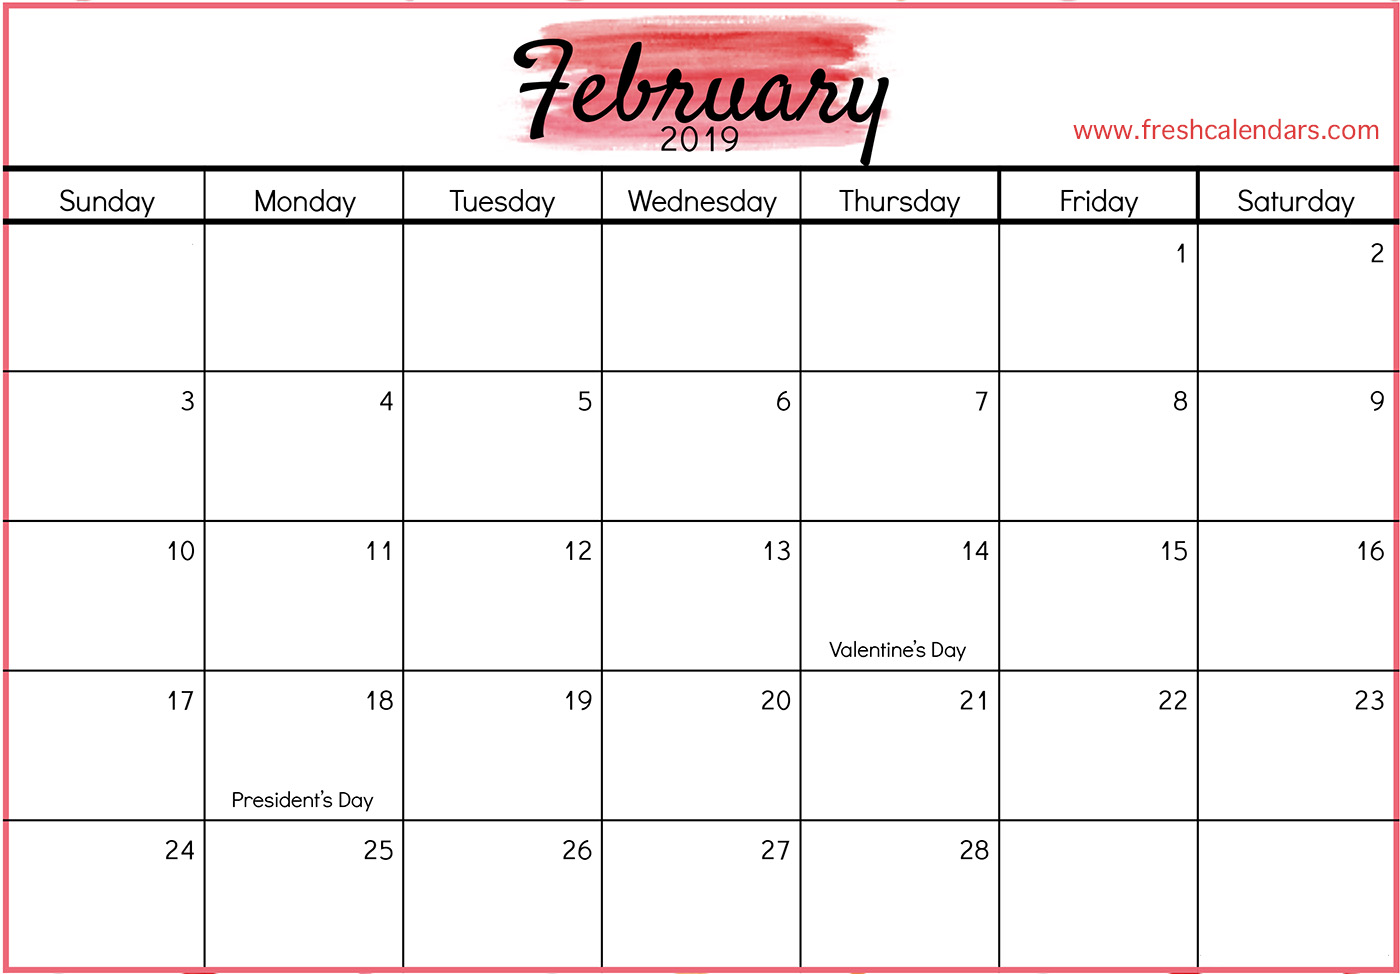 Julian Calendar February 2019 Editable February 2019 Calendar Printable Template Blank PDF Notes